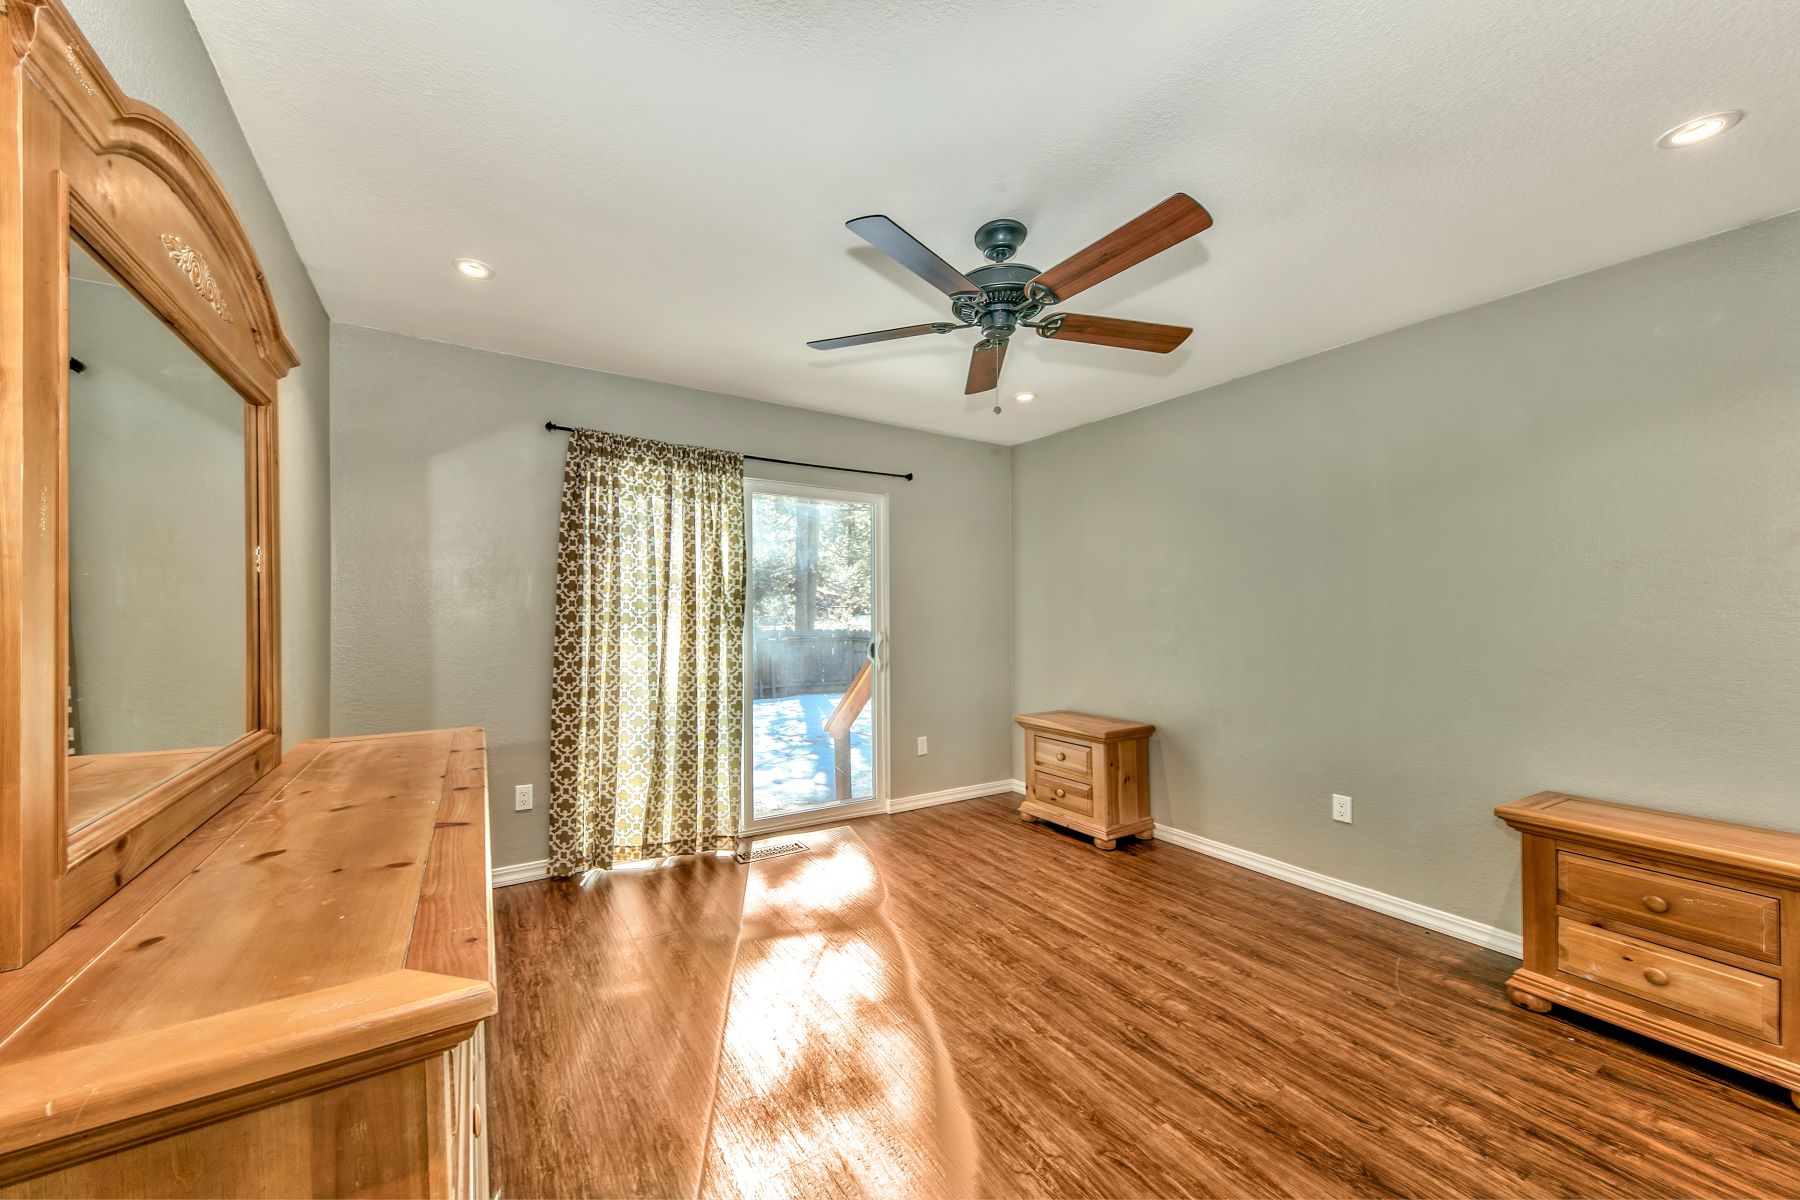 Additional photo for property listing at 2234 Barton Ave, South Lake Tahoe, CA 96150 2234 Barton Avenue South Lake Tahoe, California 96150 United States